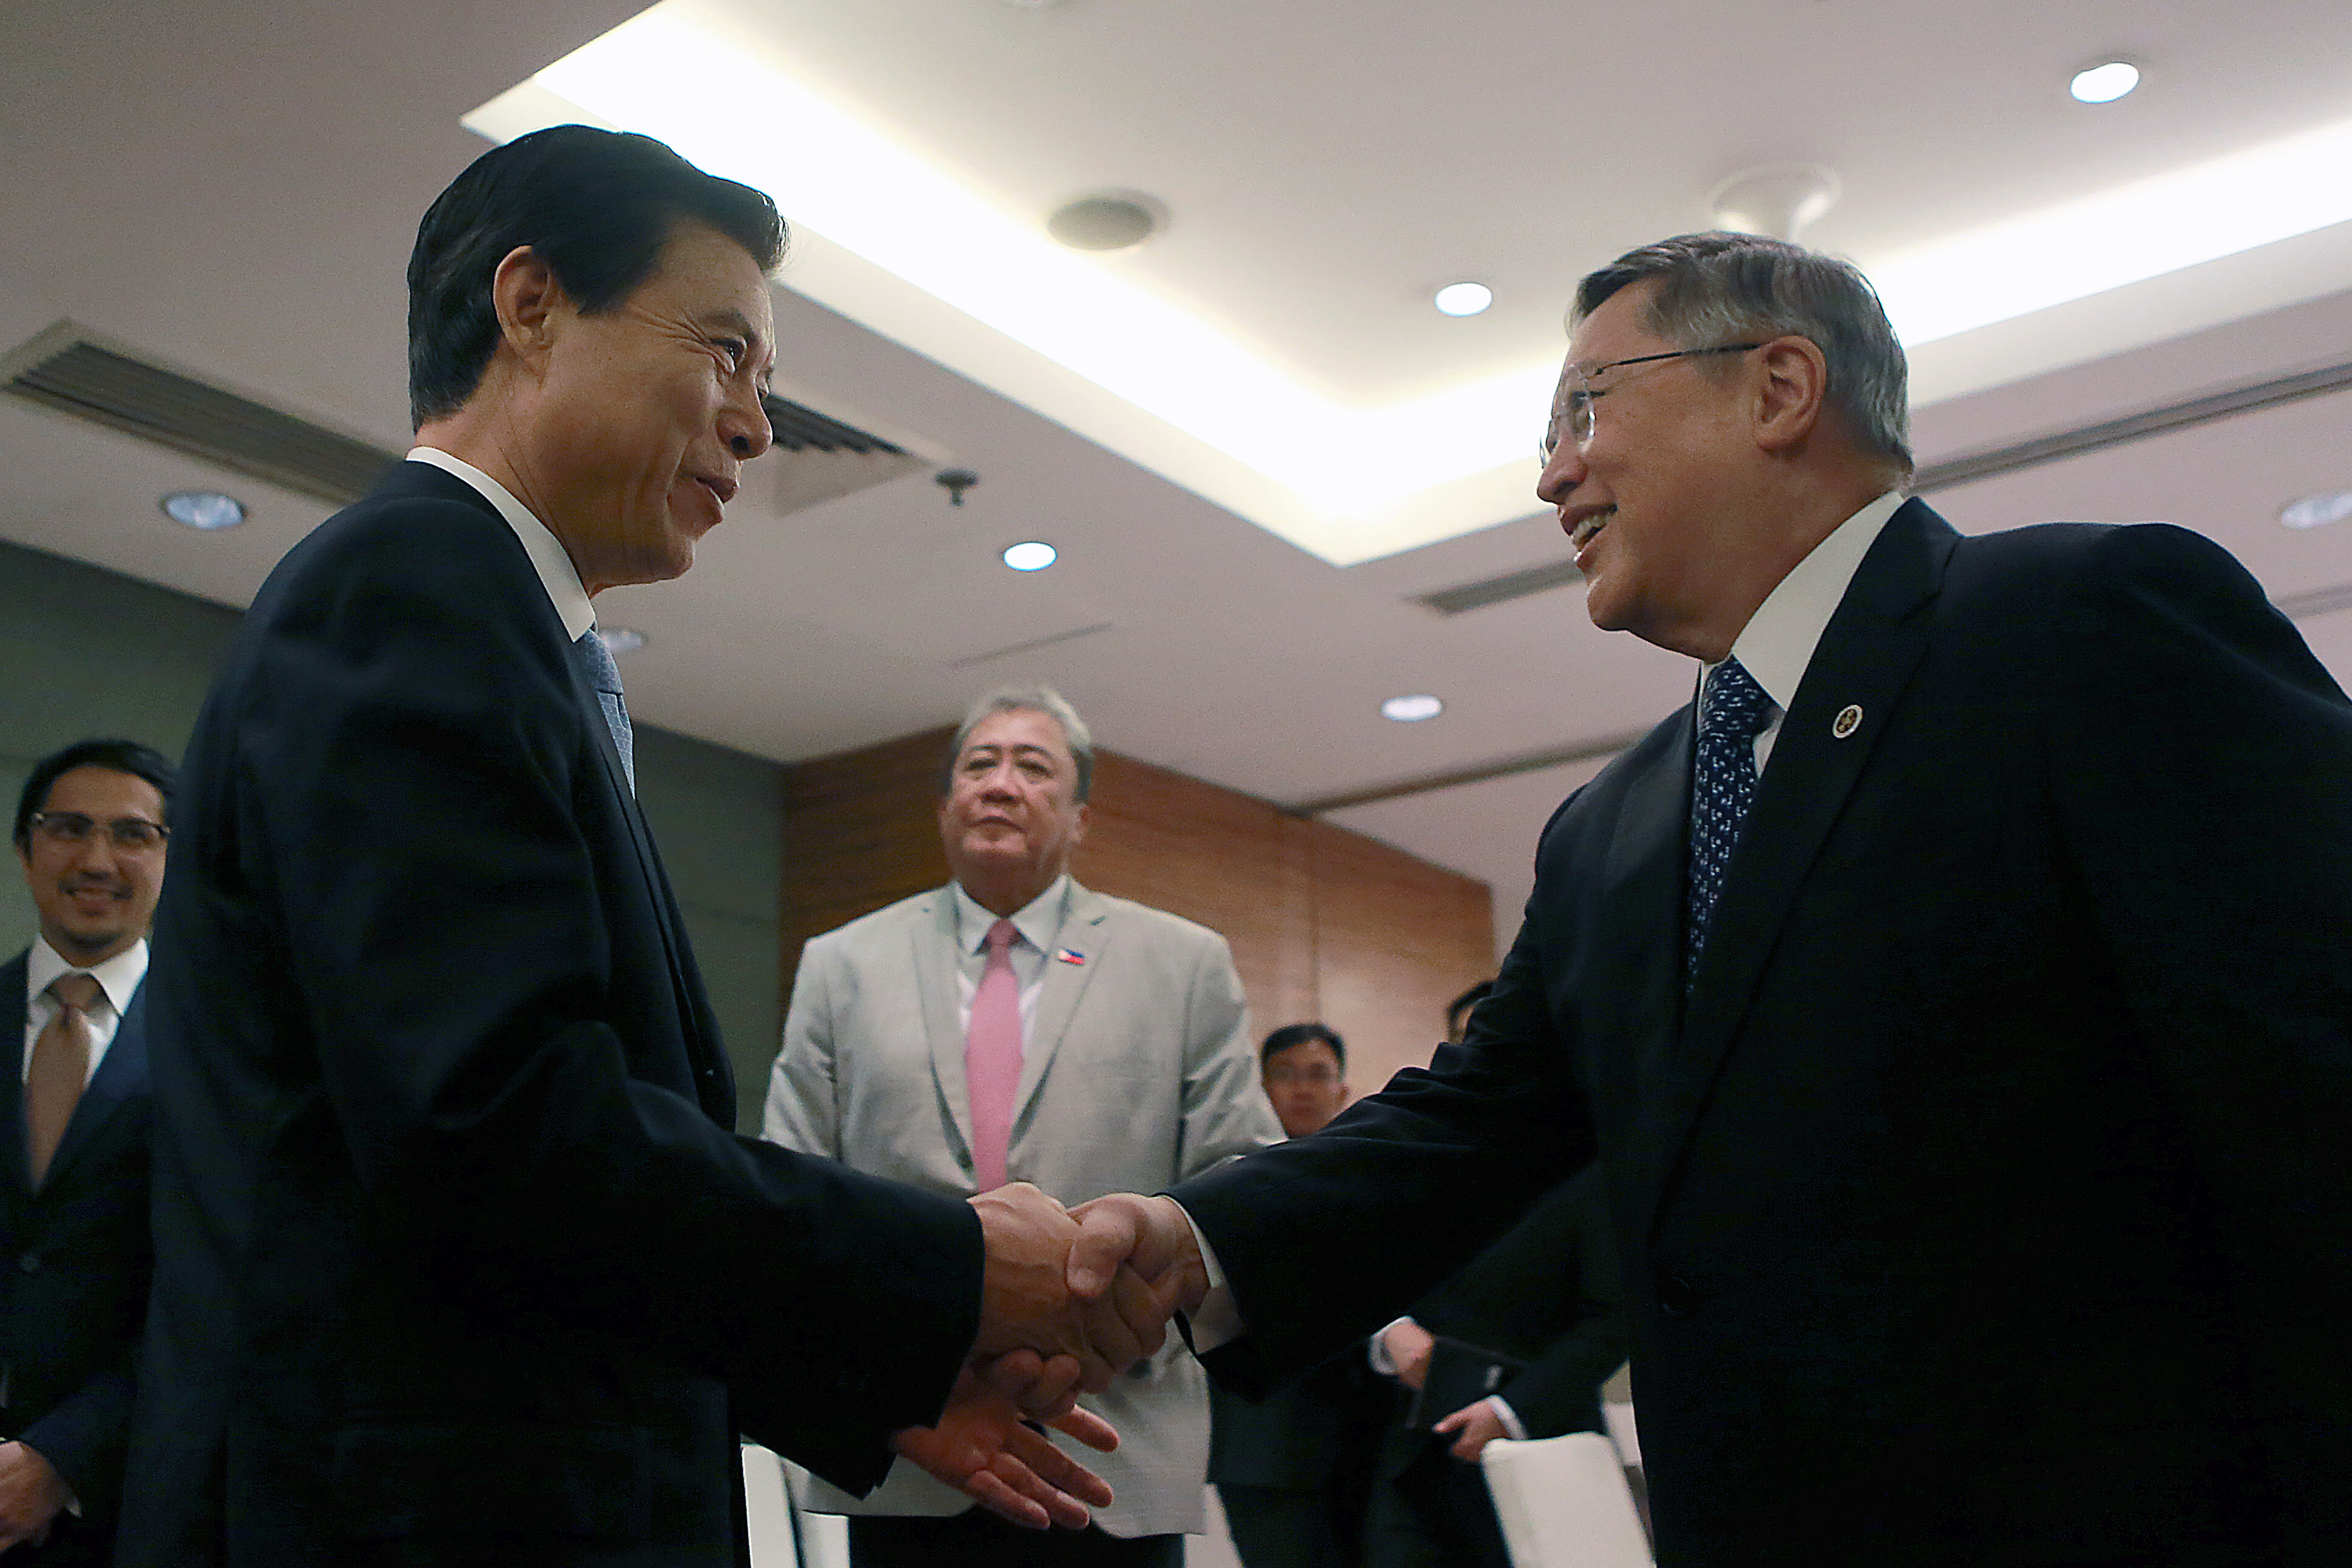 PASAY CITY, September 9, 2017 (Xinhua) -- Chinese Commerce Minister Zhong Shan (L) shakes hands with Philippine Department of Finance Secretary Carlos Dominguez III (R) during their bilateral meeting on the sidelines of the 49th Meeting of the ASEAN Economic Ministers and related meetings in Pasay City, the Philippines, September 9, 2017. (Xinhua/ROUELLE UMALI) 马尼拉分社王羽记者2017年9月9日审